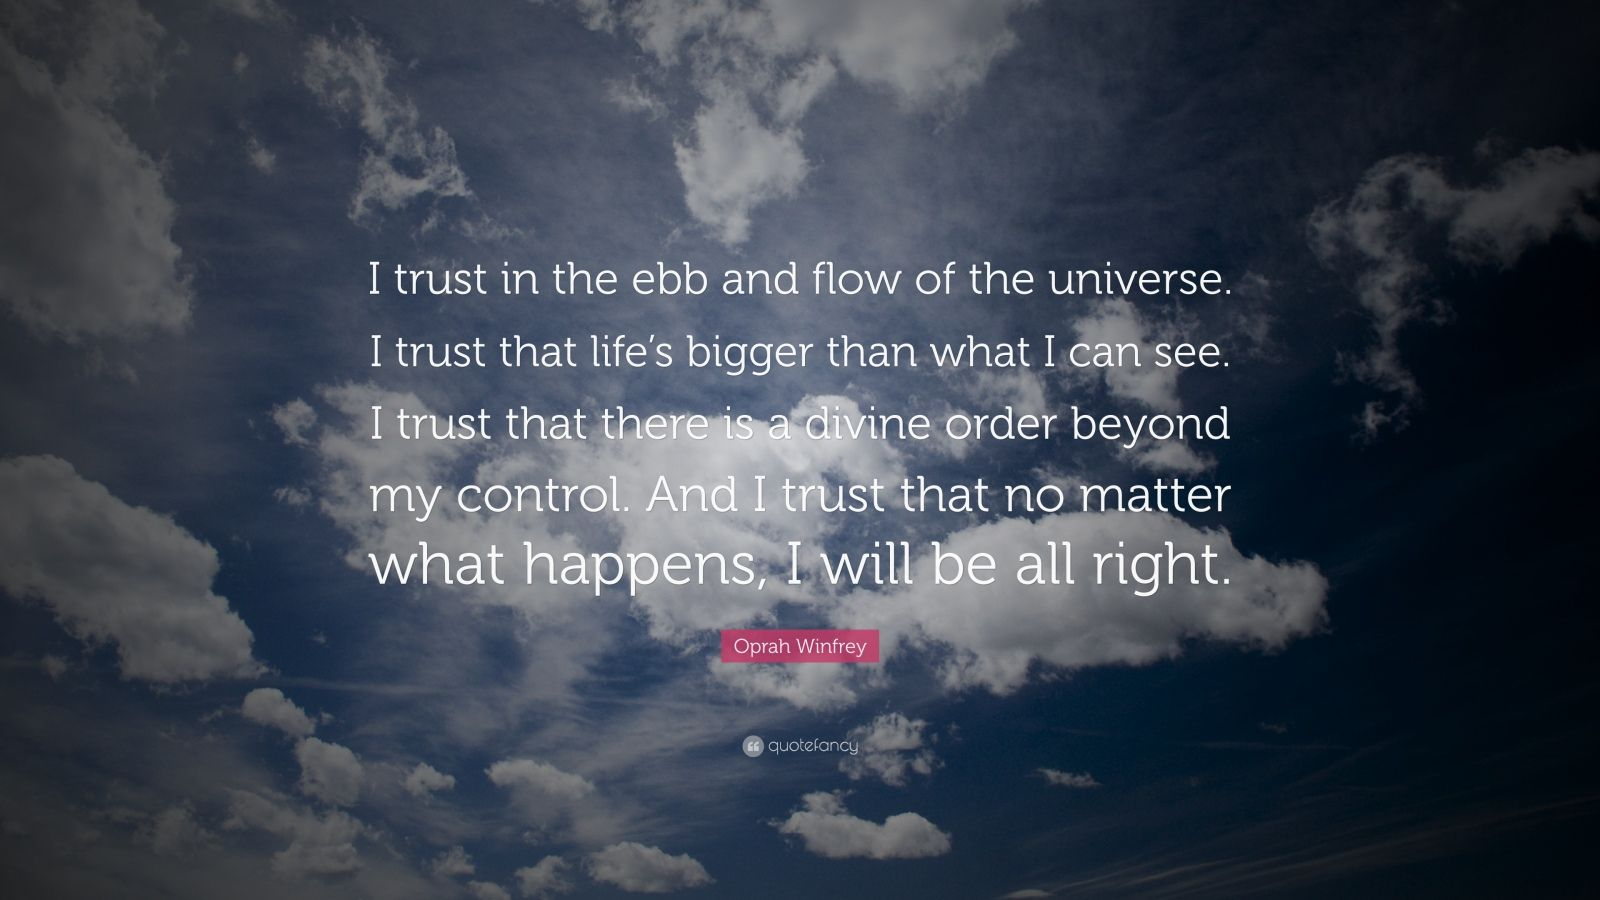 "Oprah Winfrey Quote: ""I trust in the ebb and flow of the universe. I trust that life's bigger than what I can see. I trust that there is a divine order beyond my control. And I trust that no matter what happens, I will be all right."""